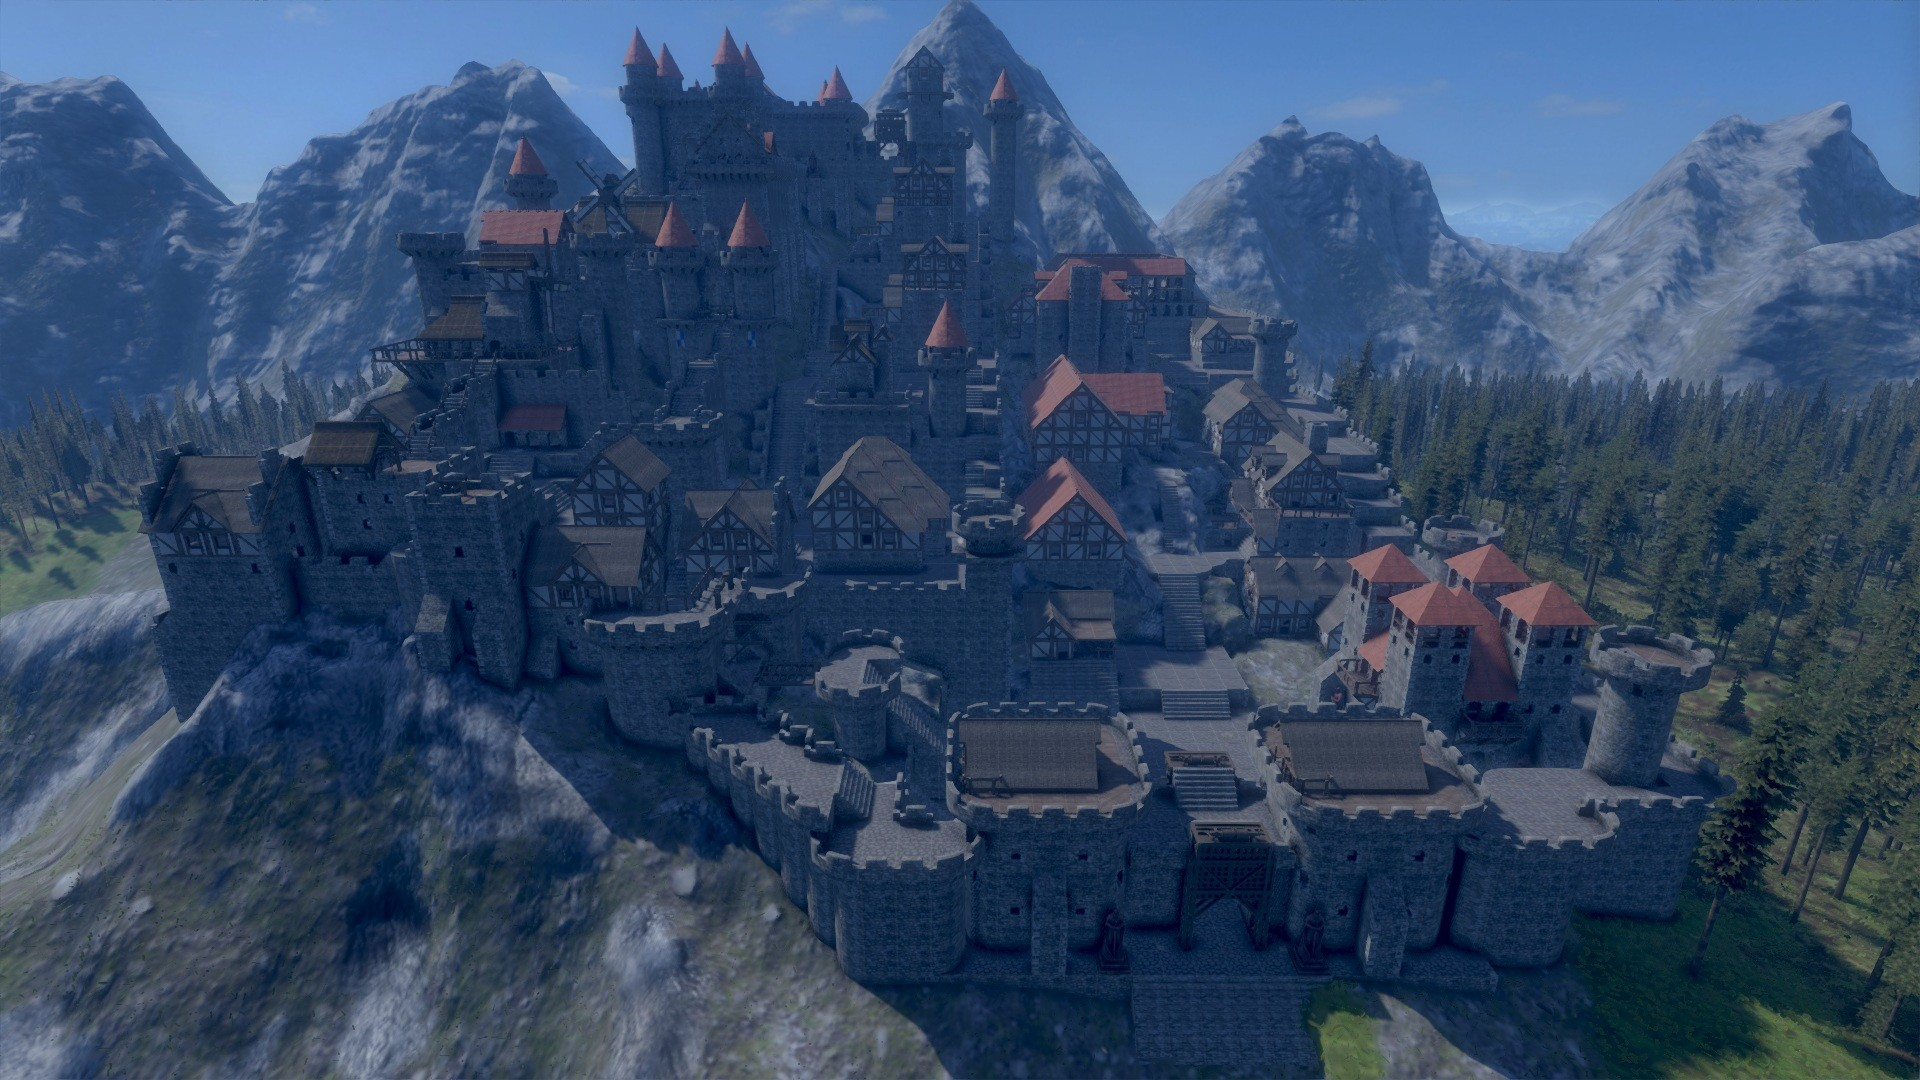 background - Castle Siege mód v Medieval Engineers